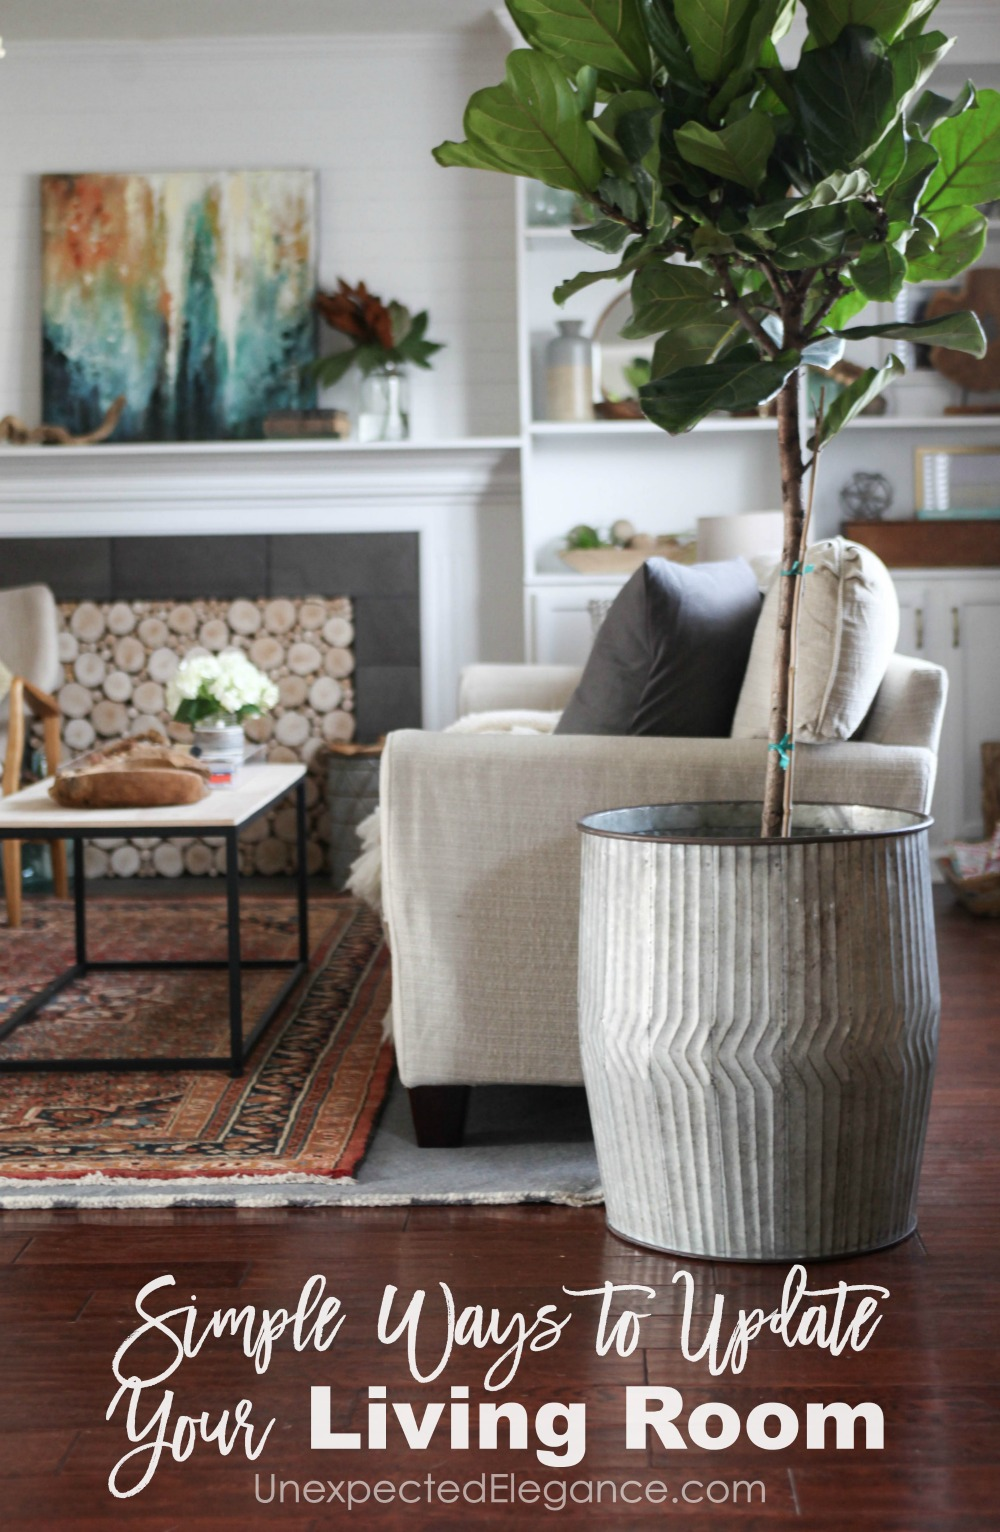 ways to update your living room without spending a lot of money